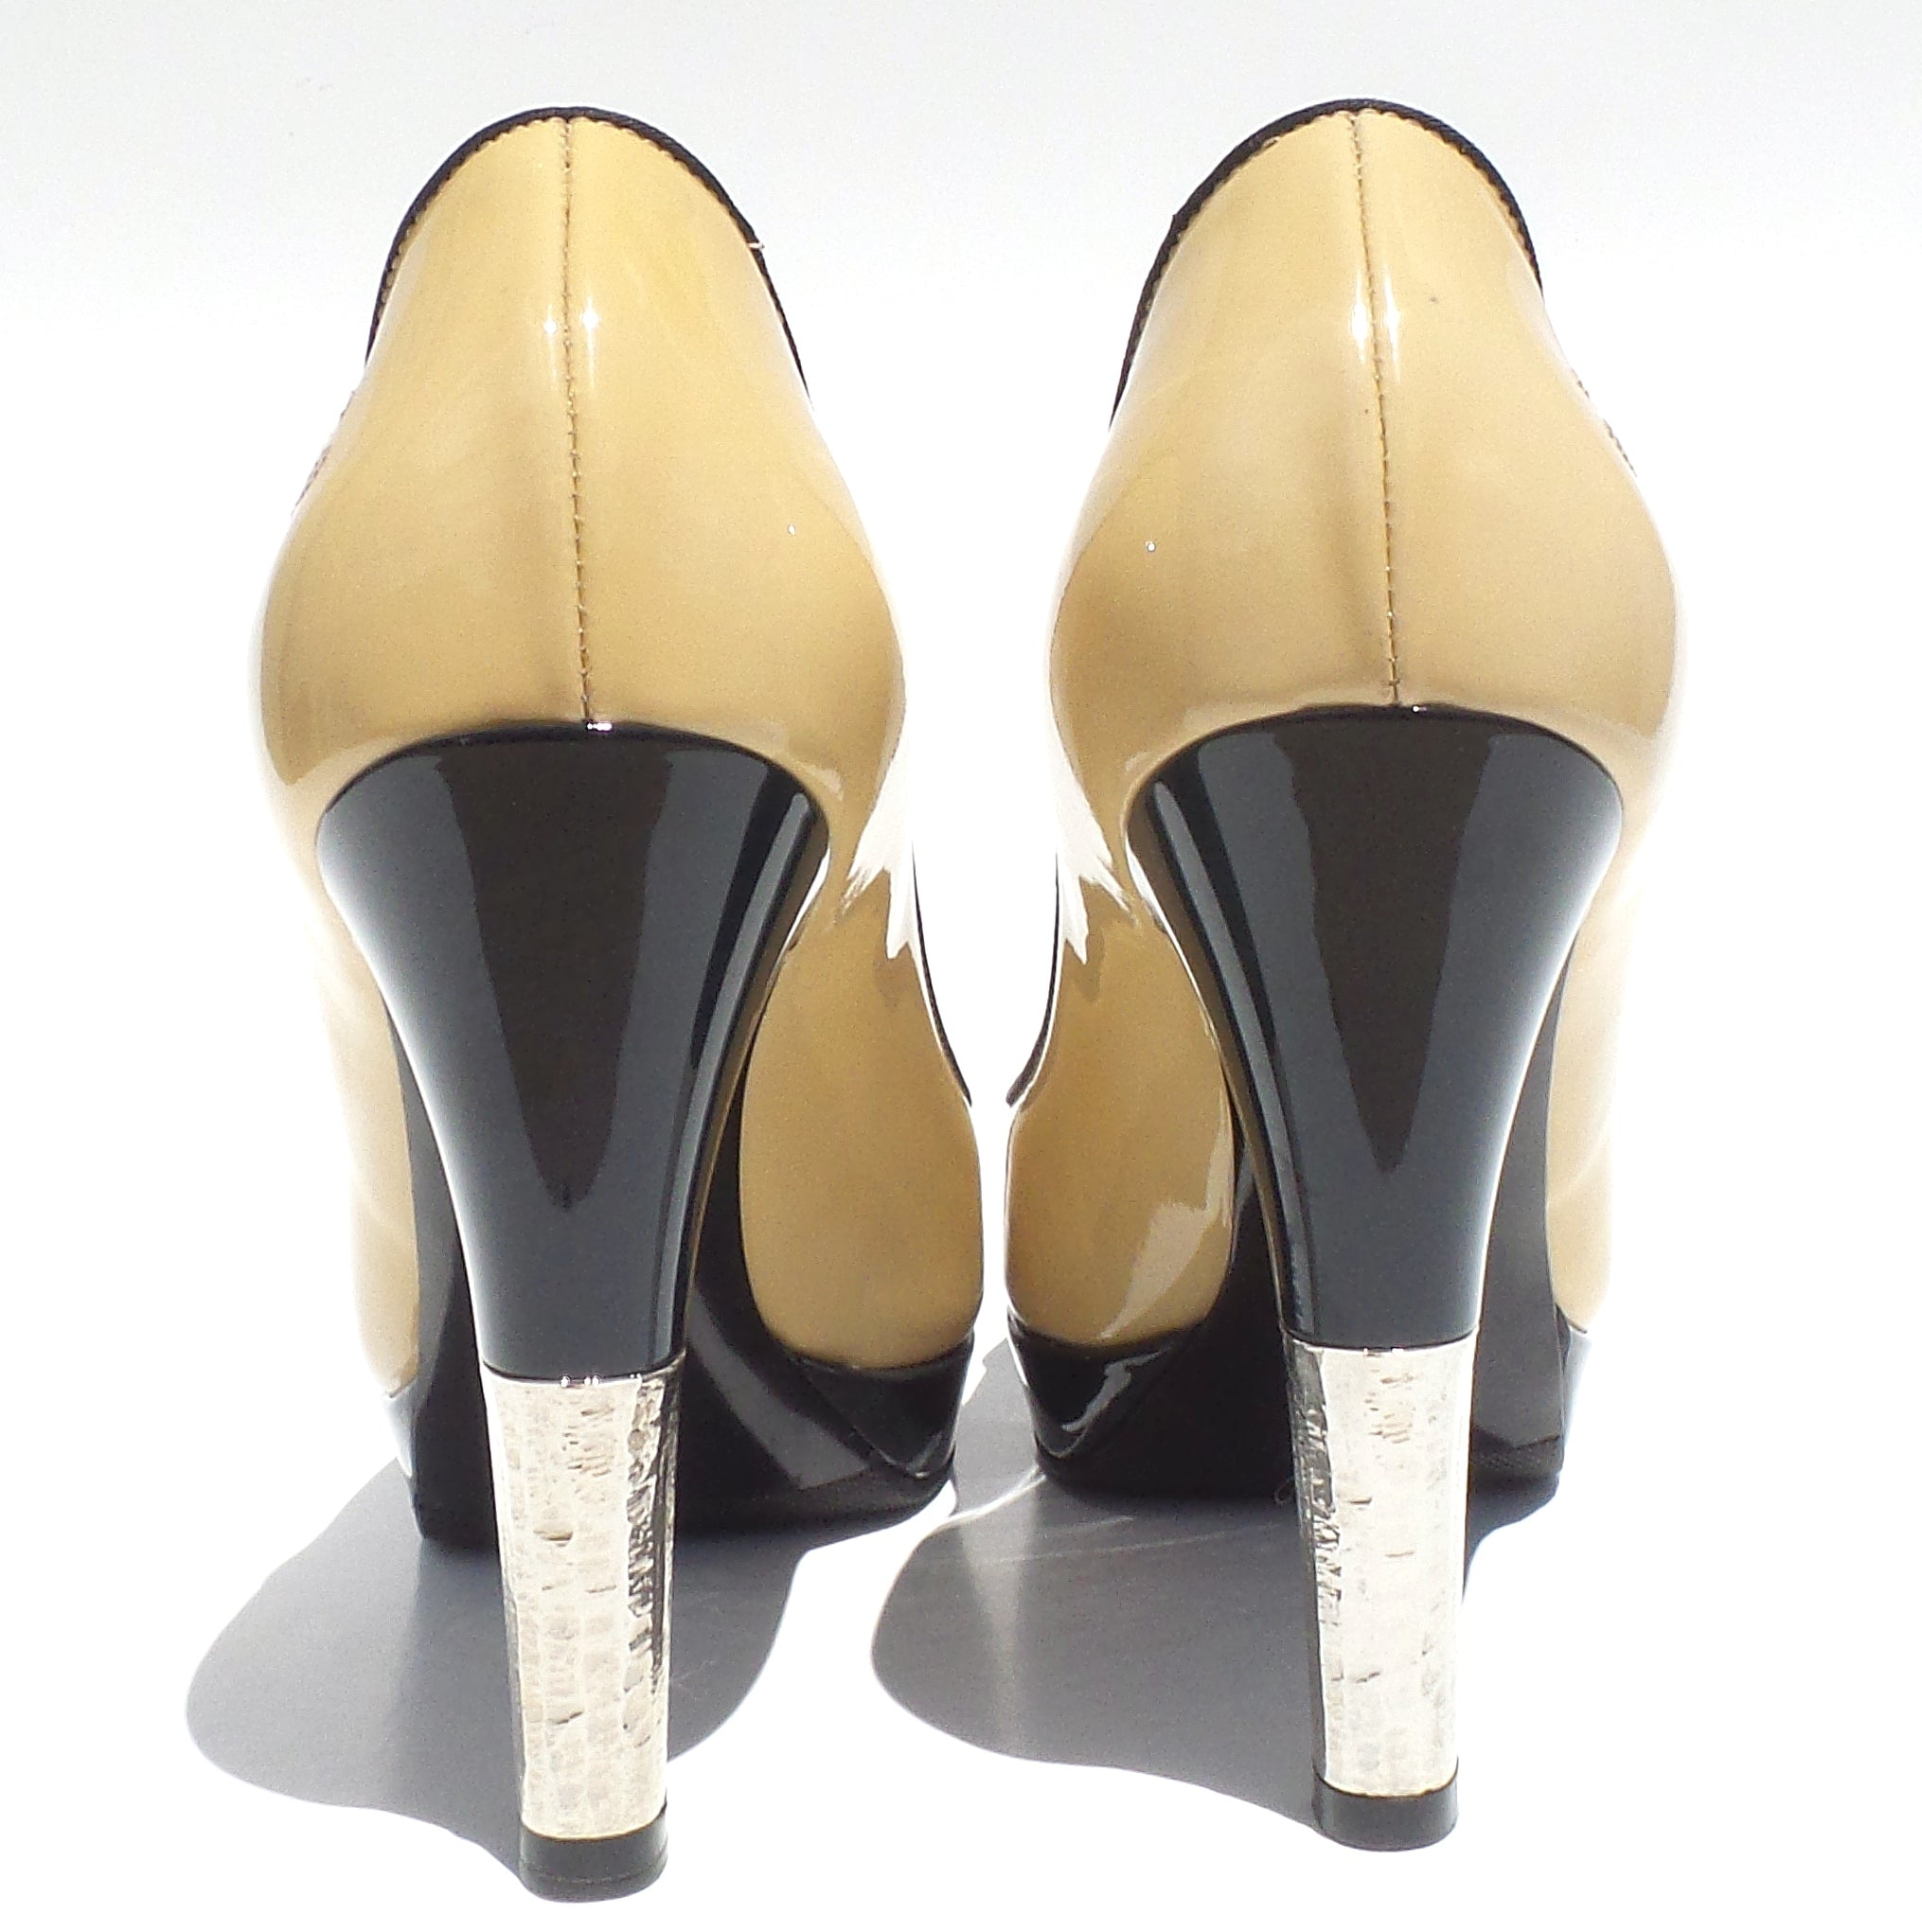 e4f967433b CHANEL Beige Black Navy Patent Leather Cap Toe Platform Silver Heels Pumps  36.5